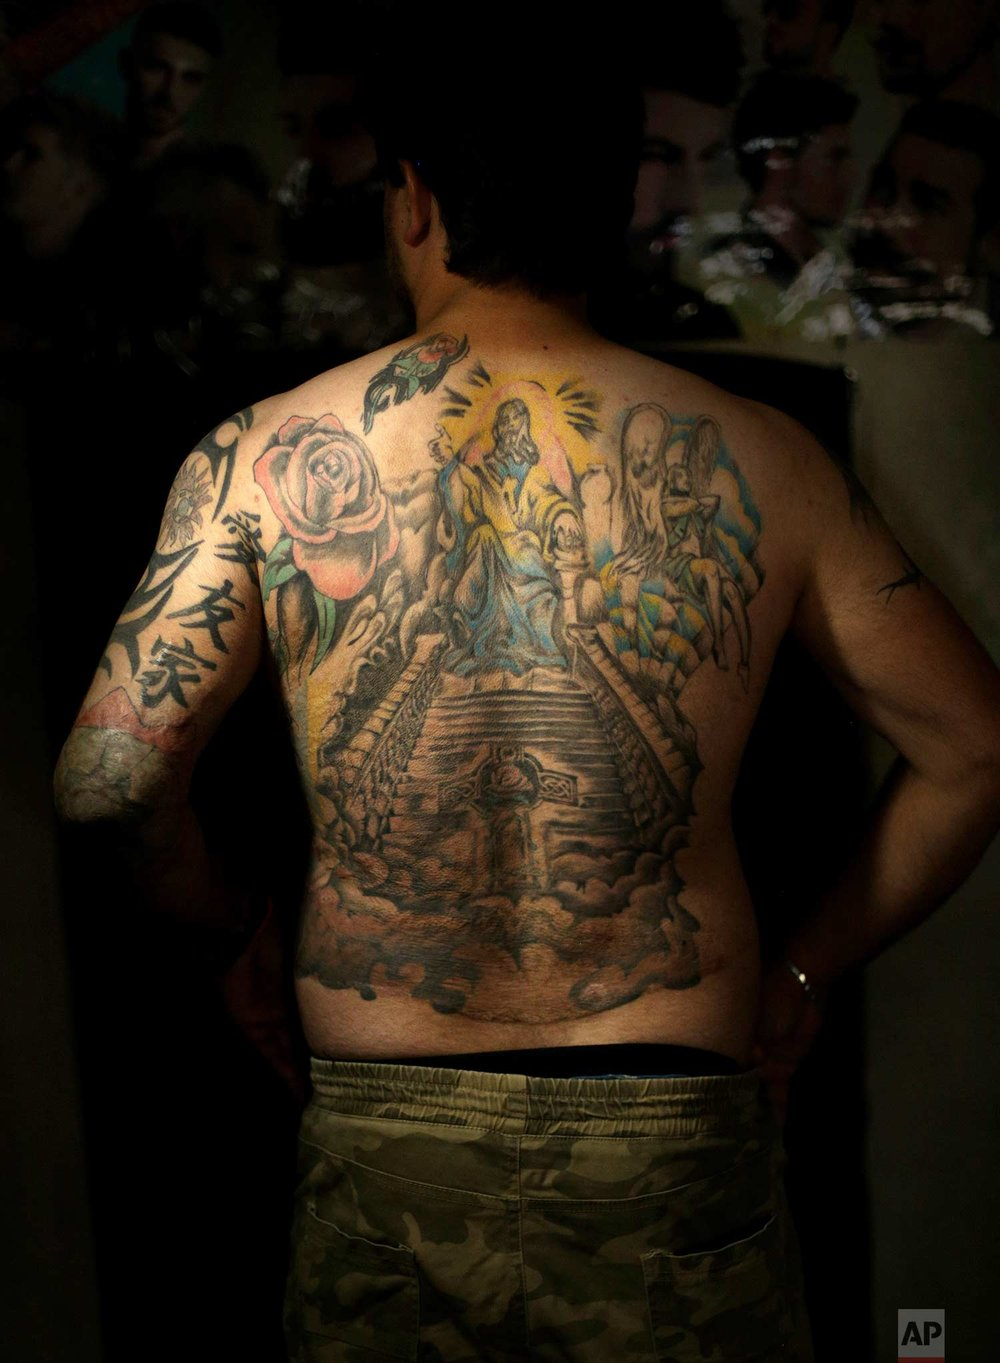 In this Wednesday. Oct. 24, 2018, Iraqi soldier Saad Khudeir displays tattoos on his body to cover scars of the burns he was injured in a car bomb, in Baghdad, Iraq. In 2008, Khudeir lost his fiancee and suffered burns on his body when a car bomb went off near his home in Sadr City, a district on the eastern side of the capital. Four years later, he endured burns in nearly 70 percent of his body when a suicide bomber rammed his explosives-laden car into his convoy in the then restive city of Fallujah. (AP Photo/Hadi Mizban)